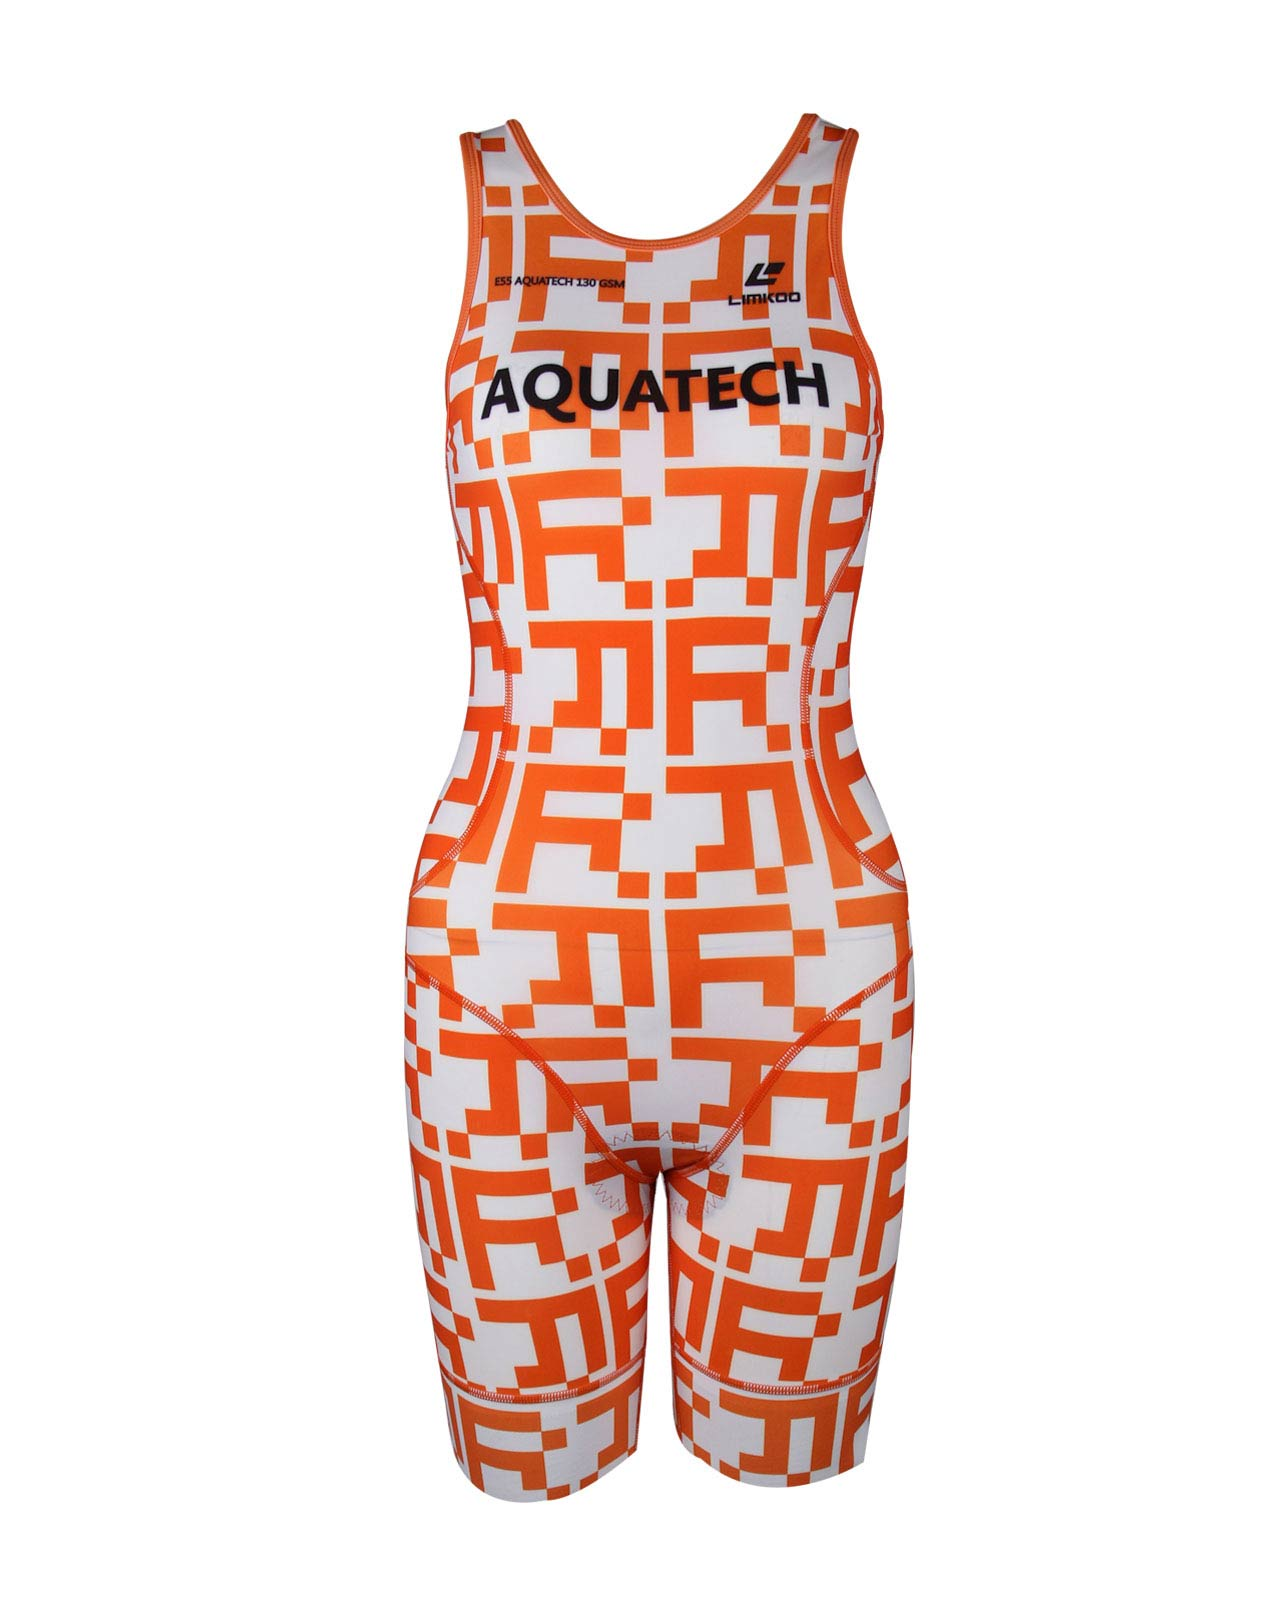 French AQUATECH ITU Tri Suit